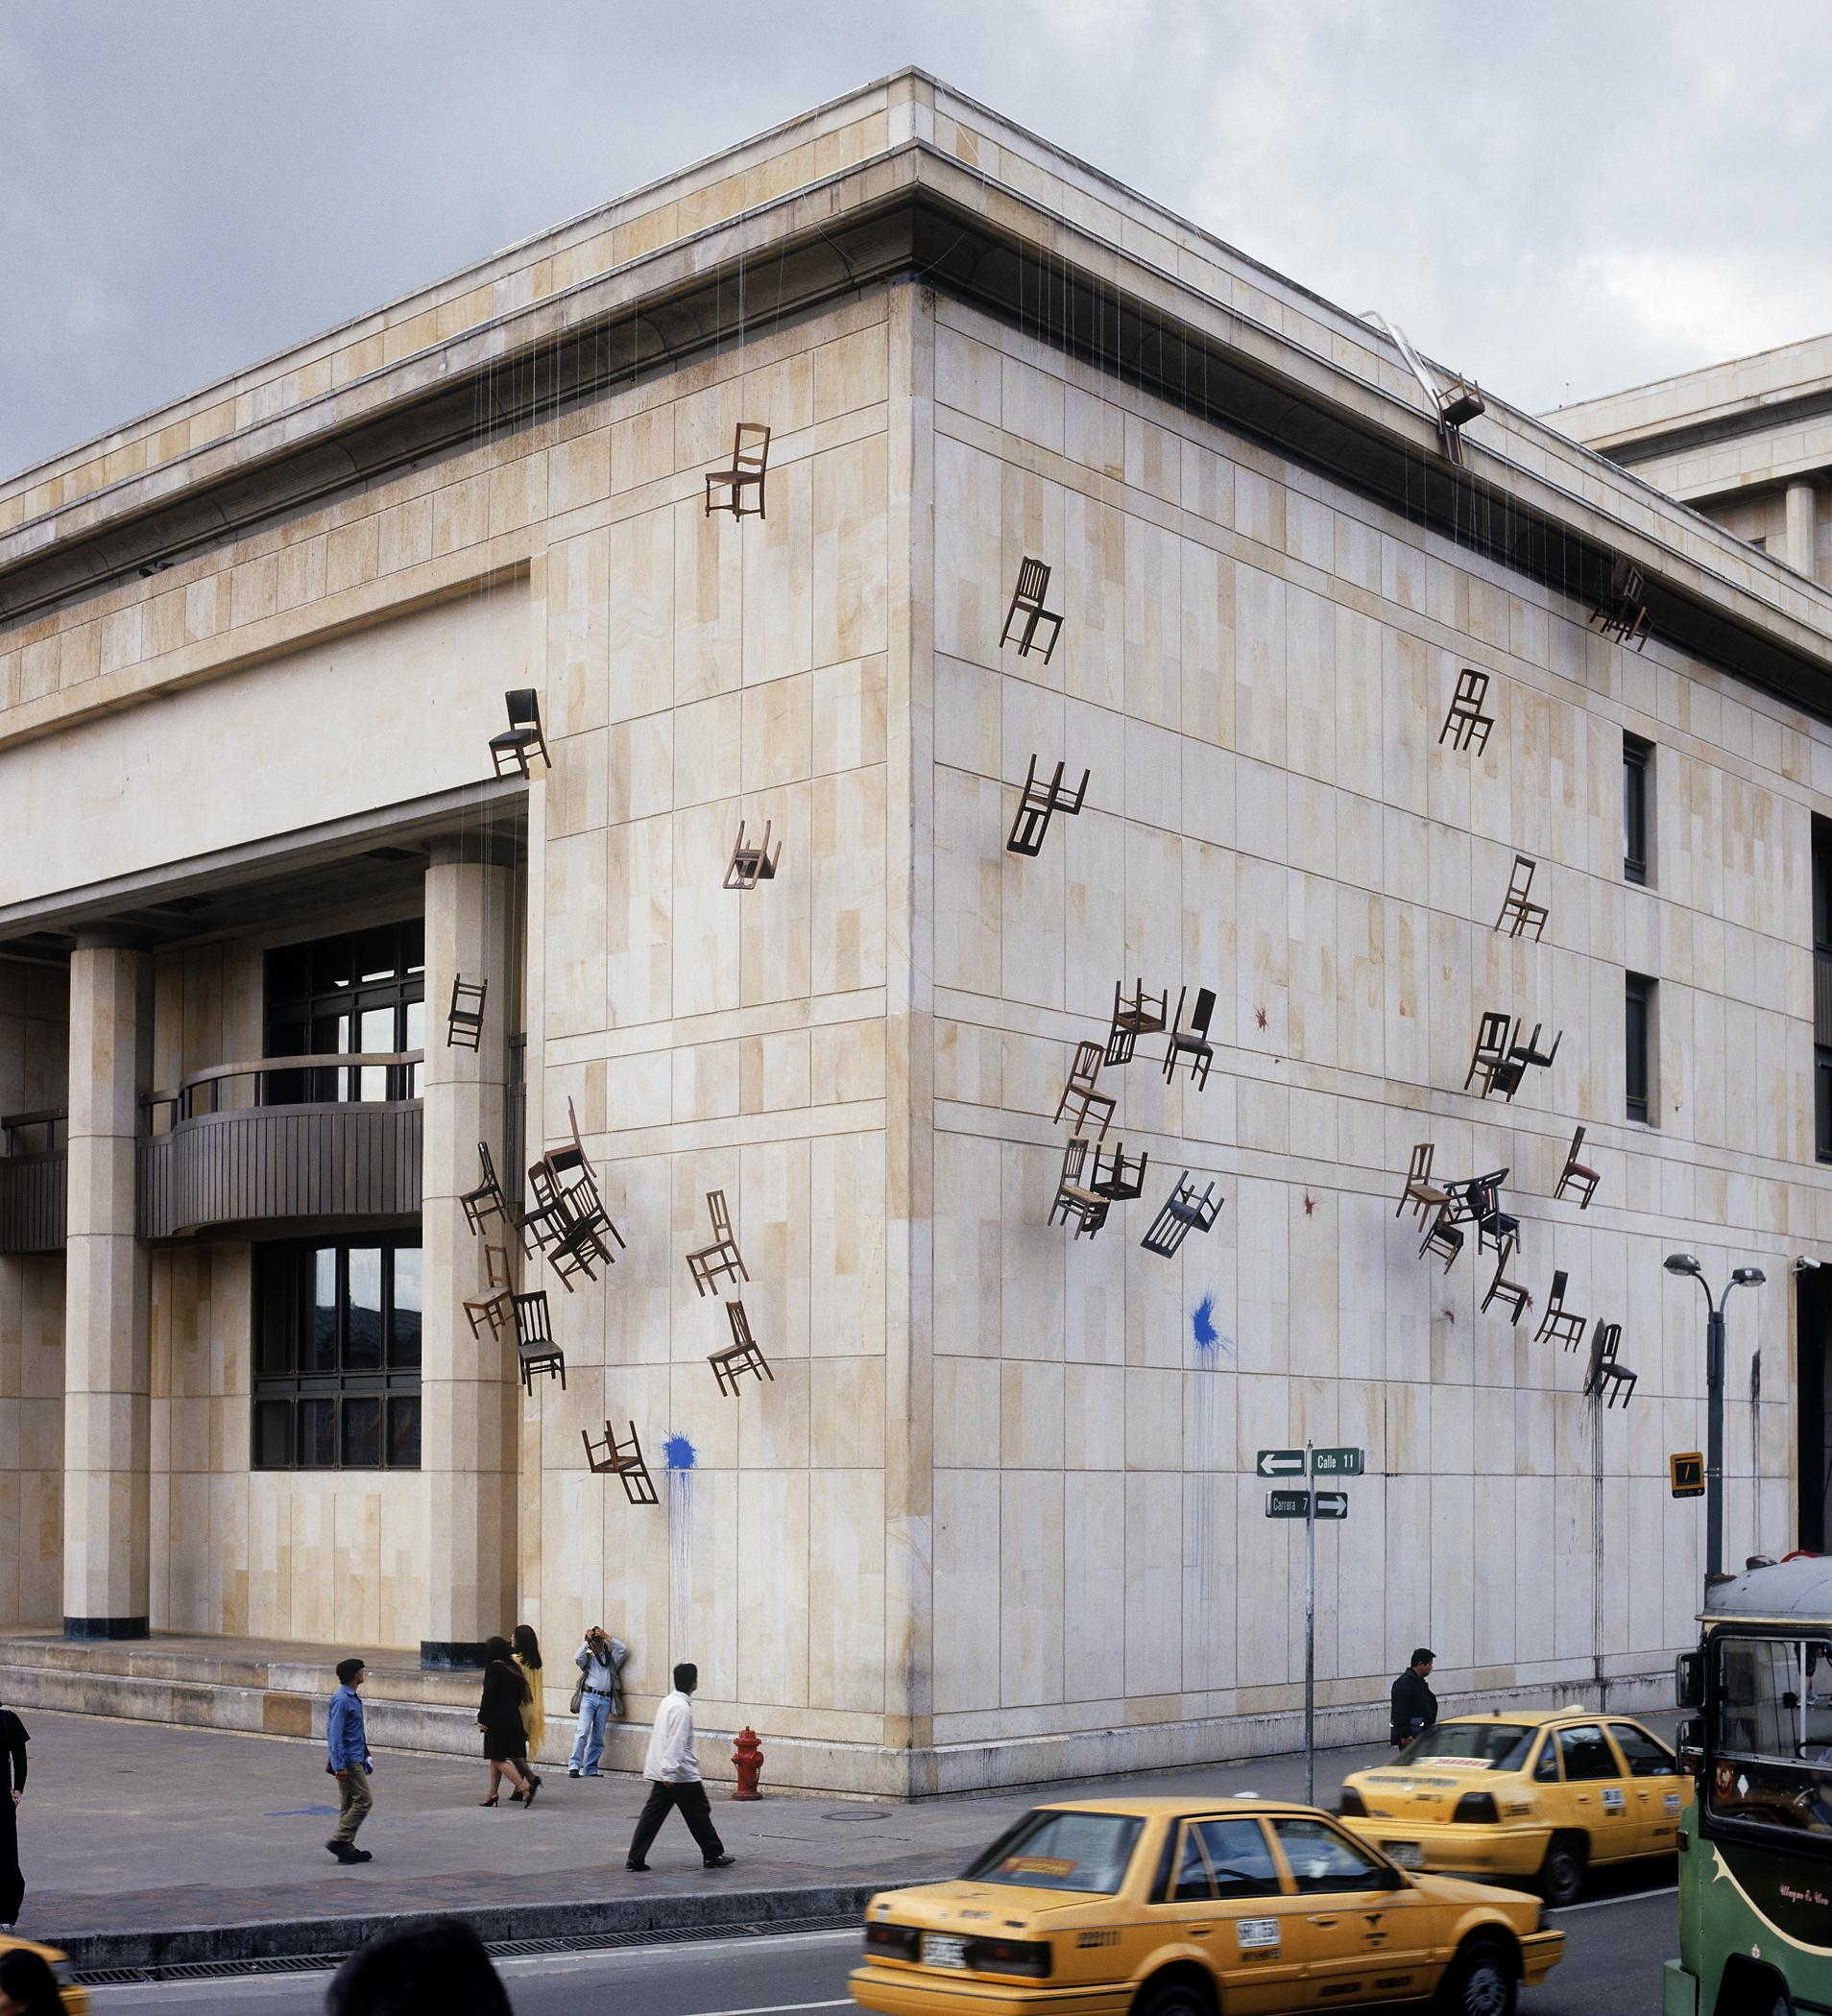 A building has several dozen chairs hanging off its roof and down the side, suspended by rope.